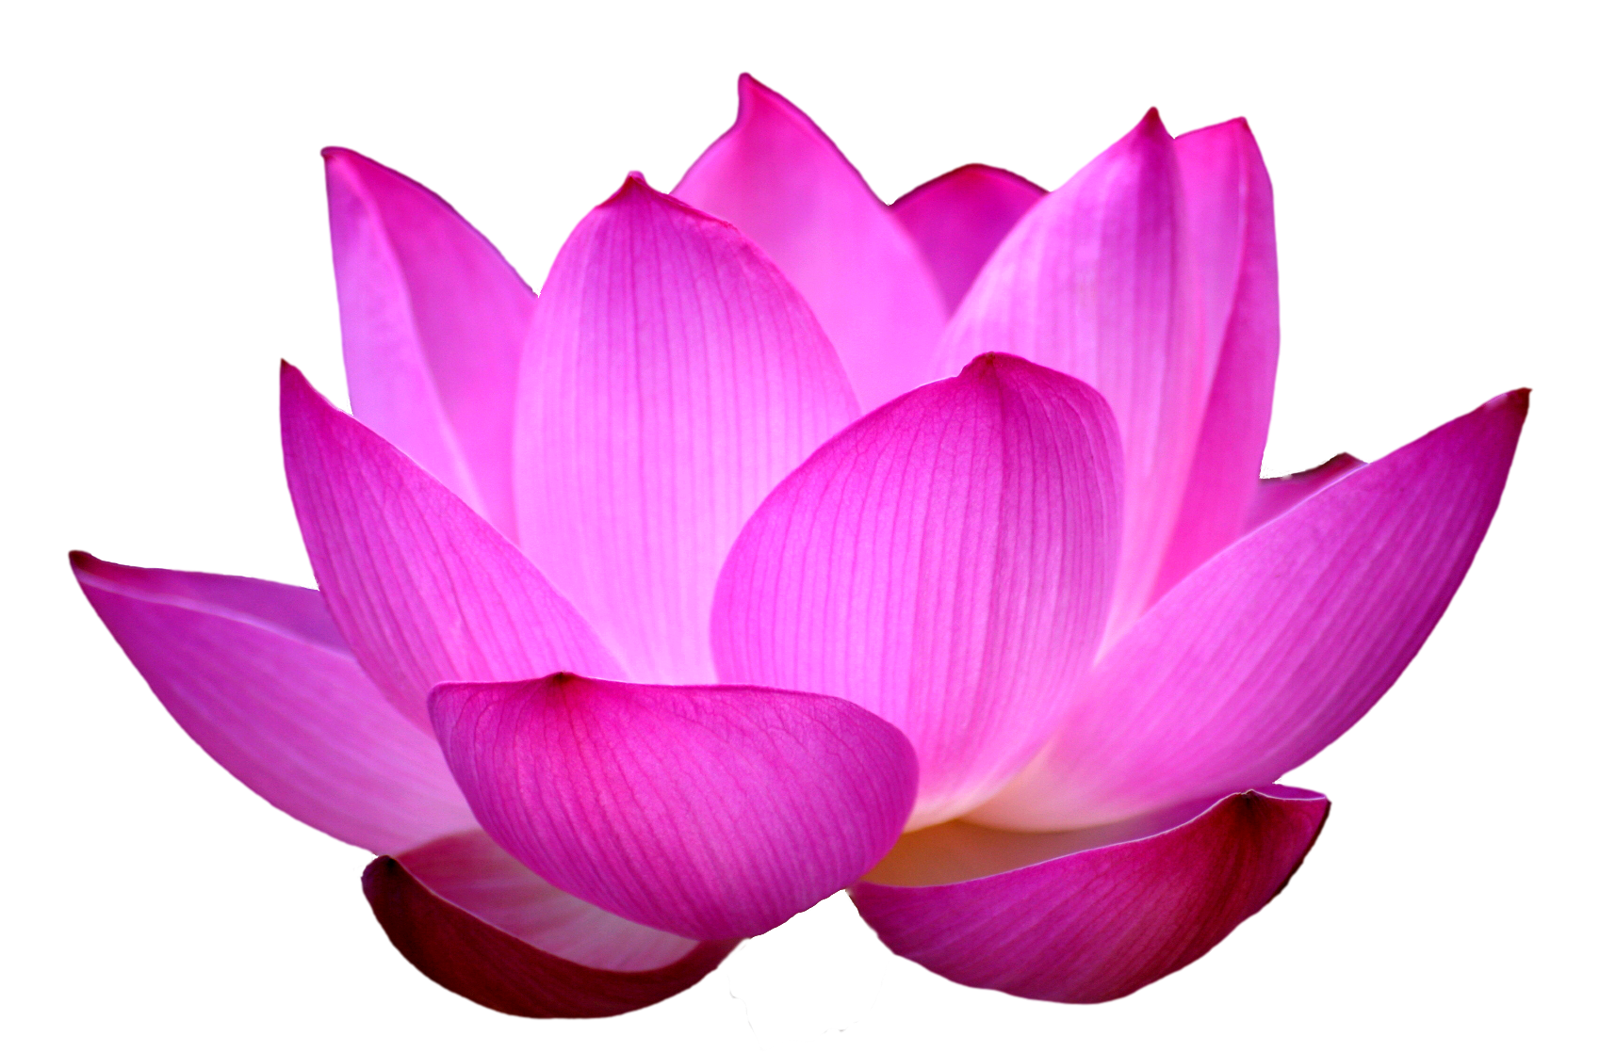 Lotus Flower Png Hd Transparent Lotus Flower Hdg Images Pluspng